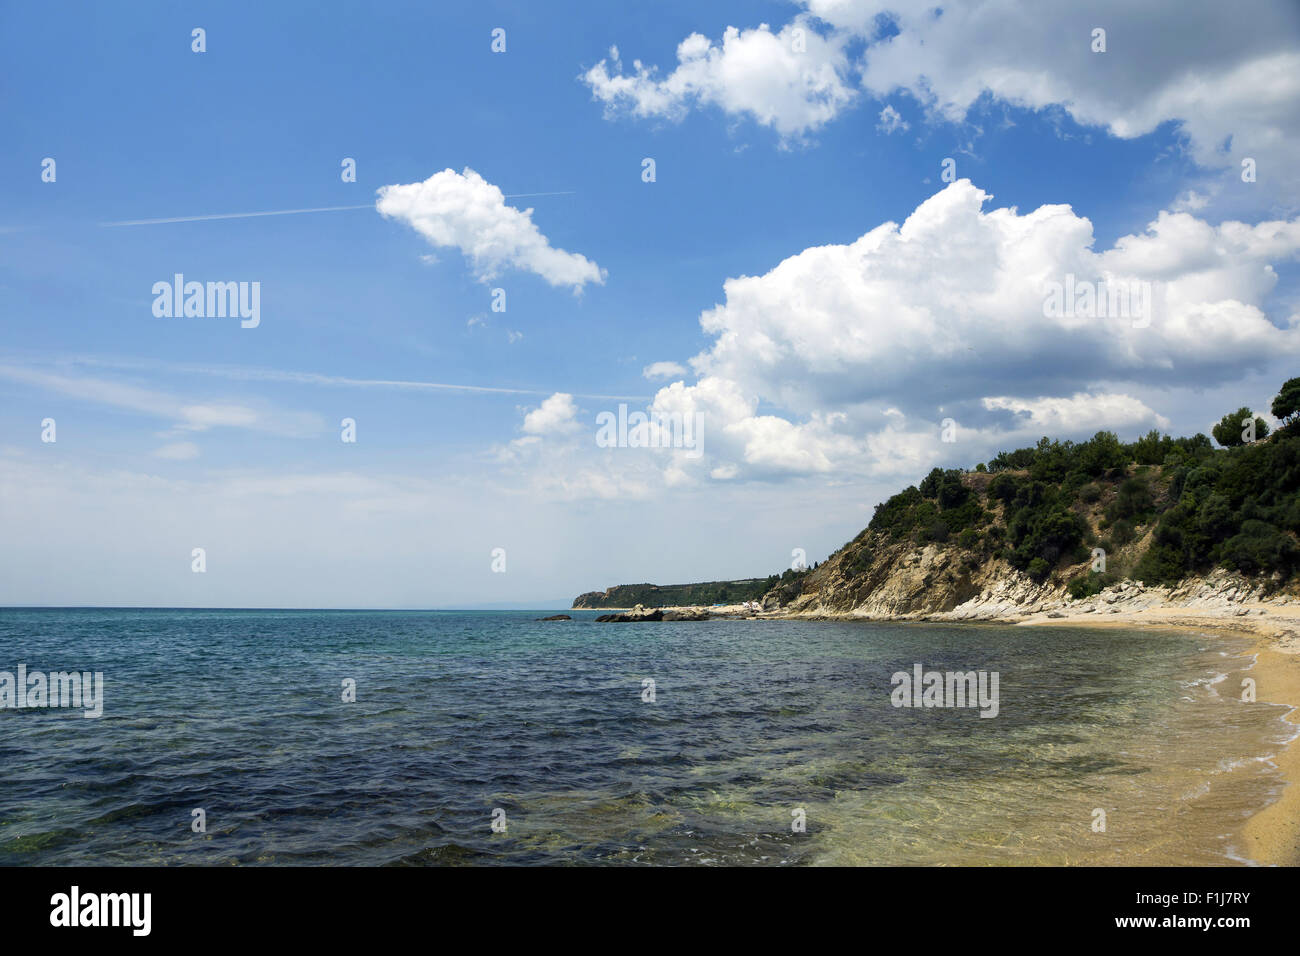 View from Paralia Eleochoriou and Aegean sea, North Greece - Stock Image